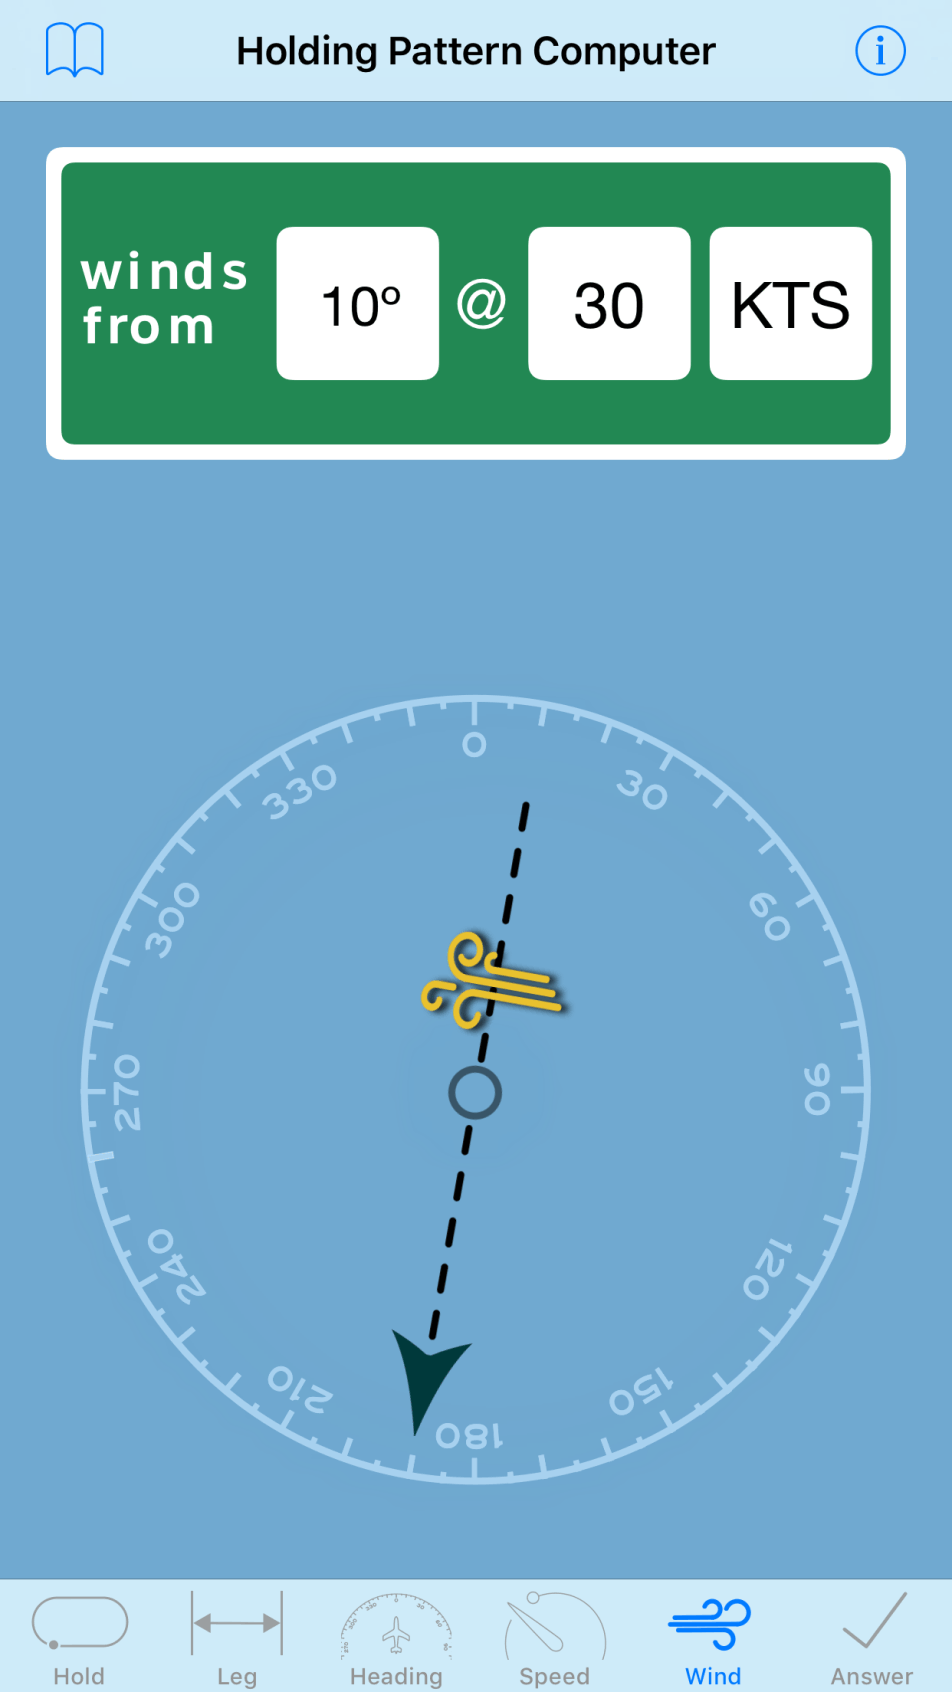 Holding Pattern Computer -Windspeed Tab